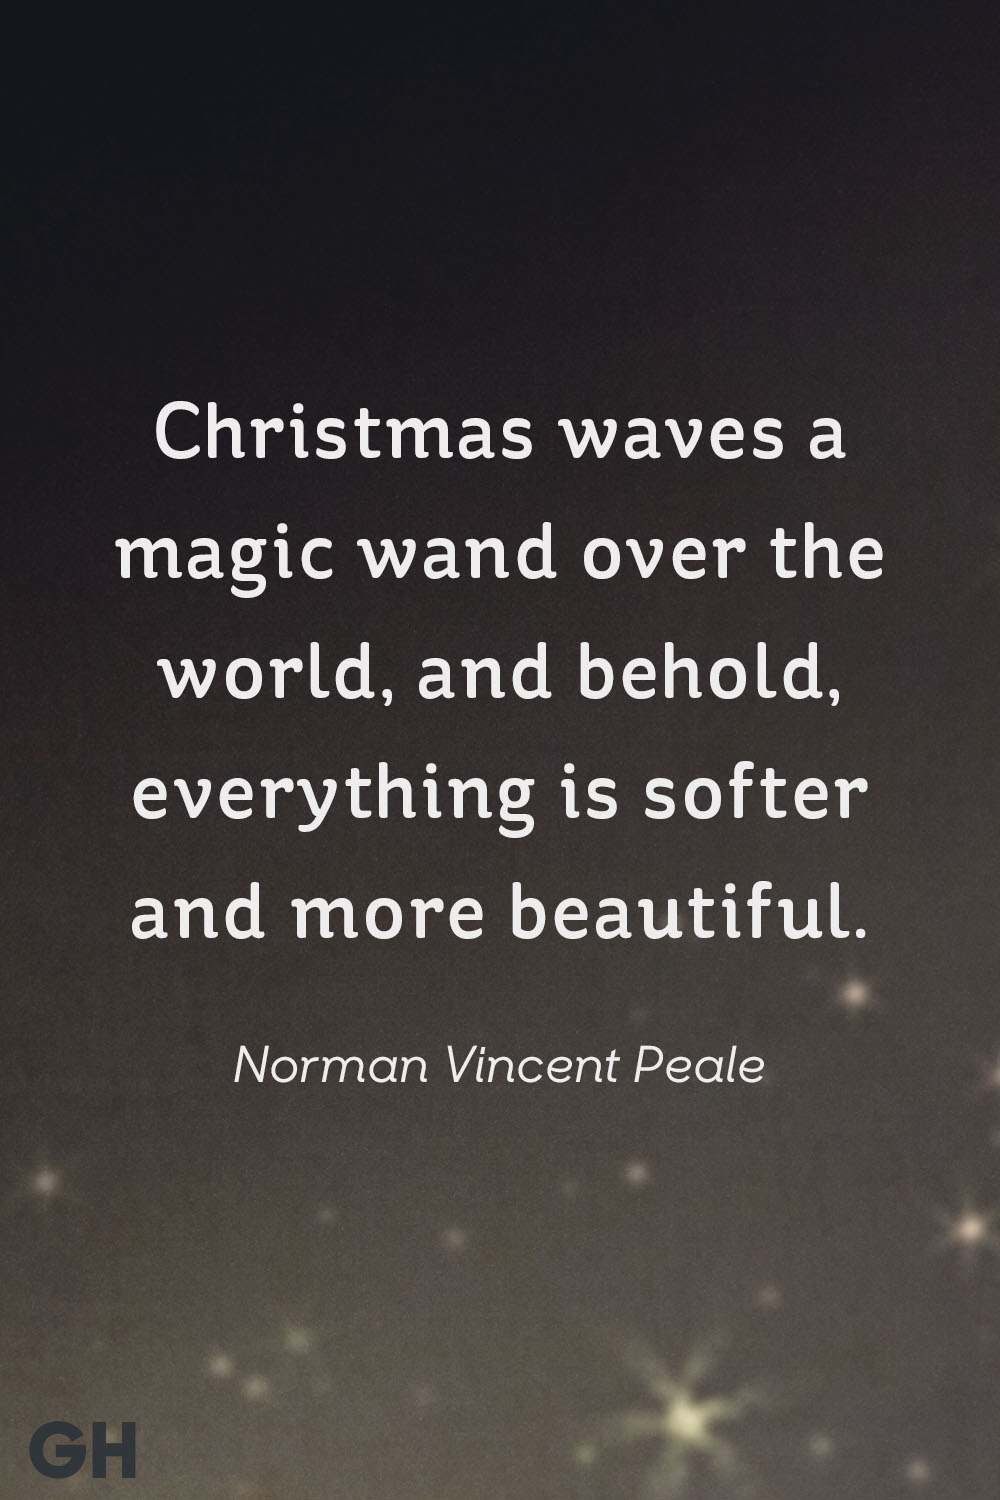 Quotes Christmas 27 Best Christmas Quotes Of All Time  Festive Holiday Sayings